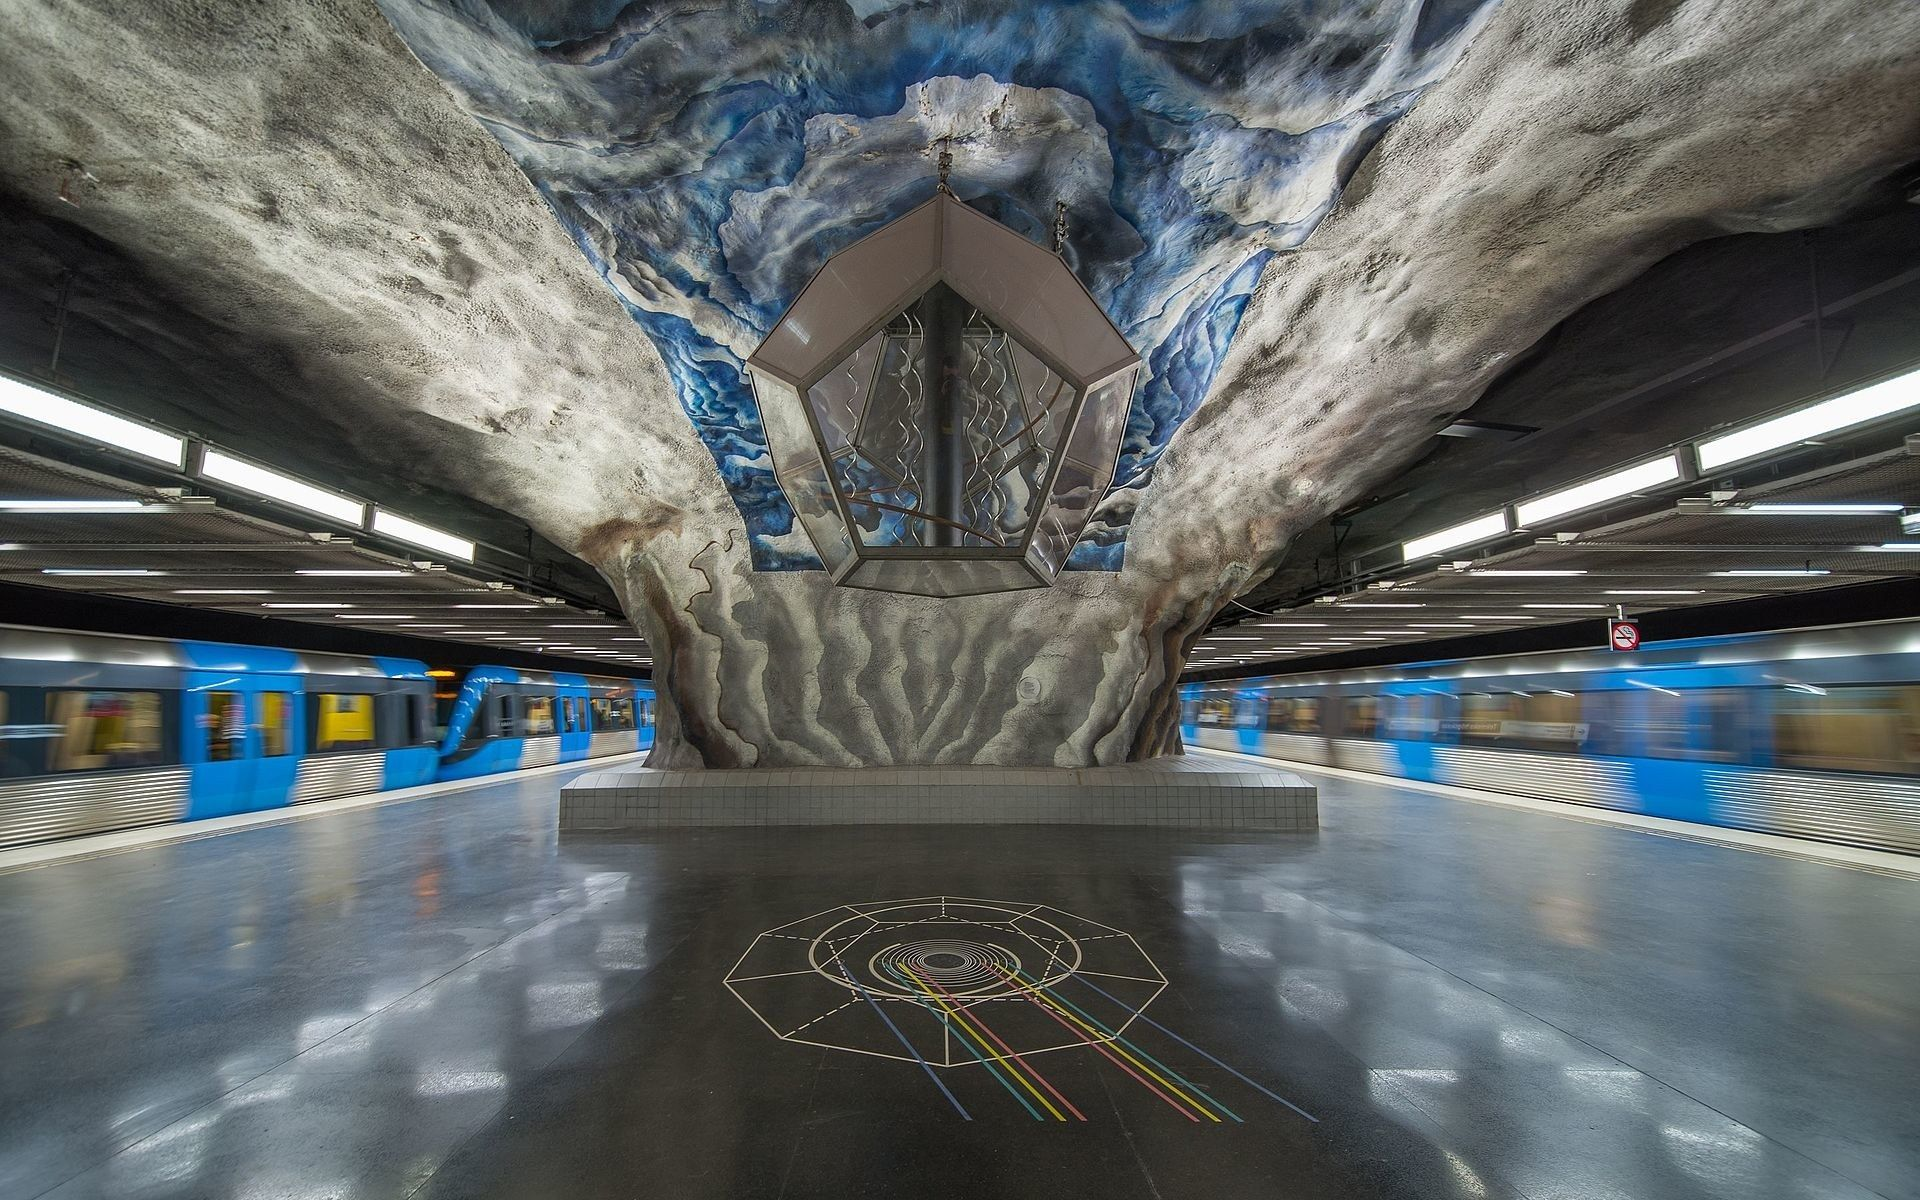 Stockholm's Subway Is the World's Longest Art Gallery